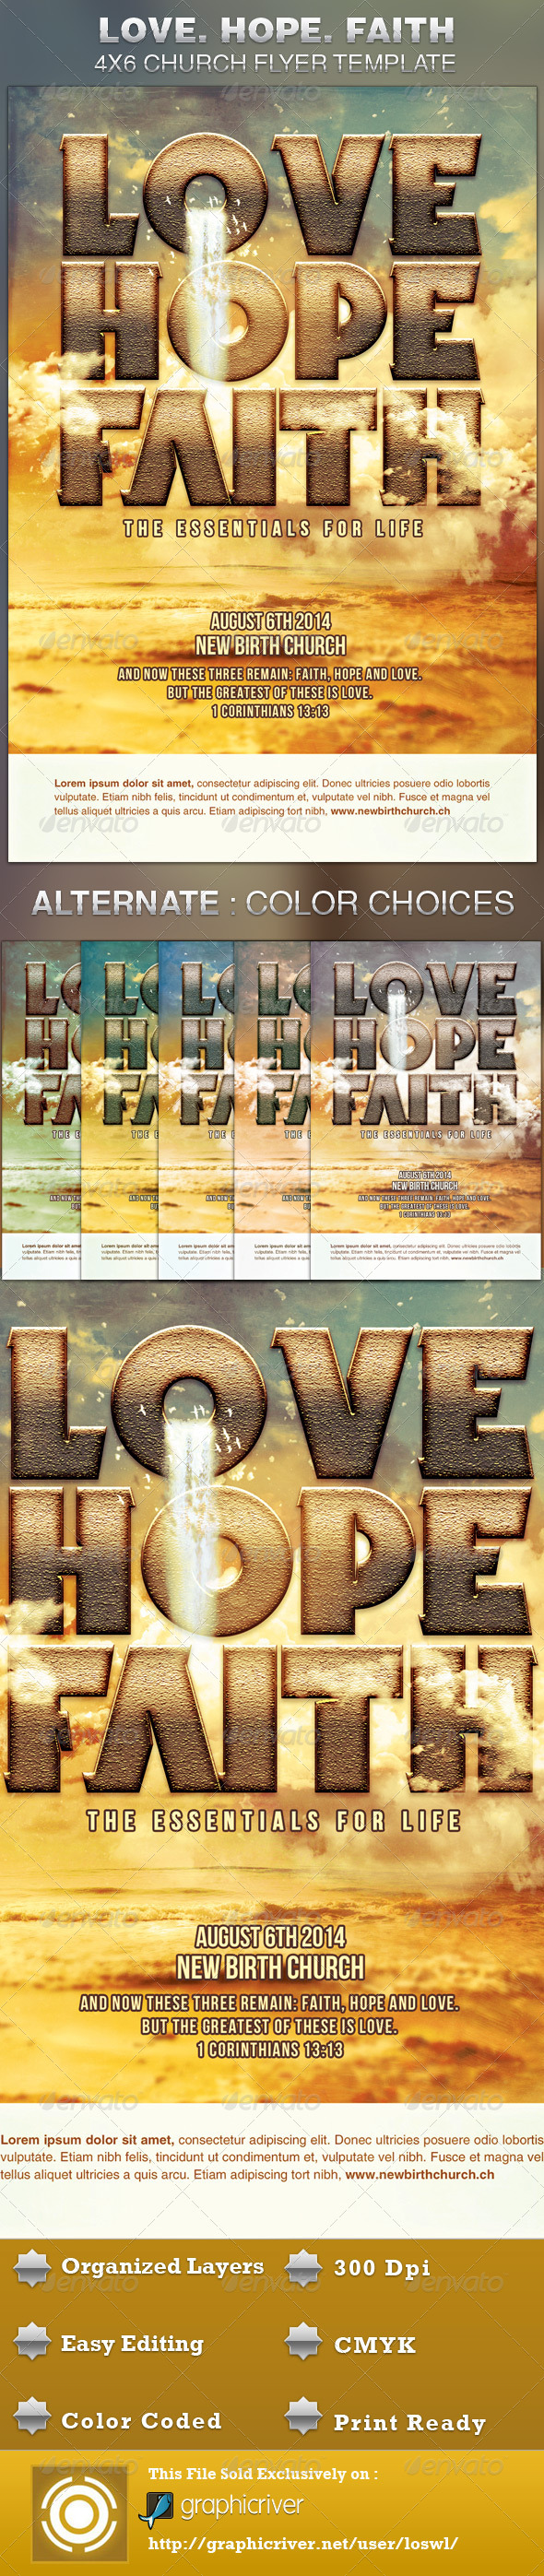 Love Hope Faith Church Flyer Template - Church Flyers